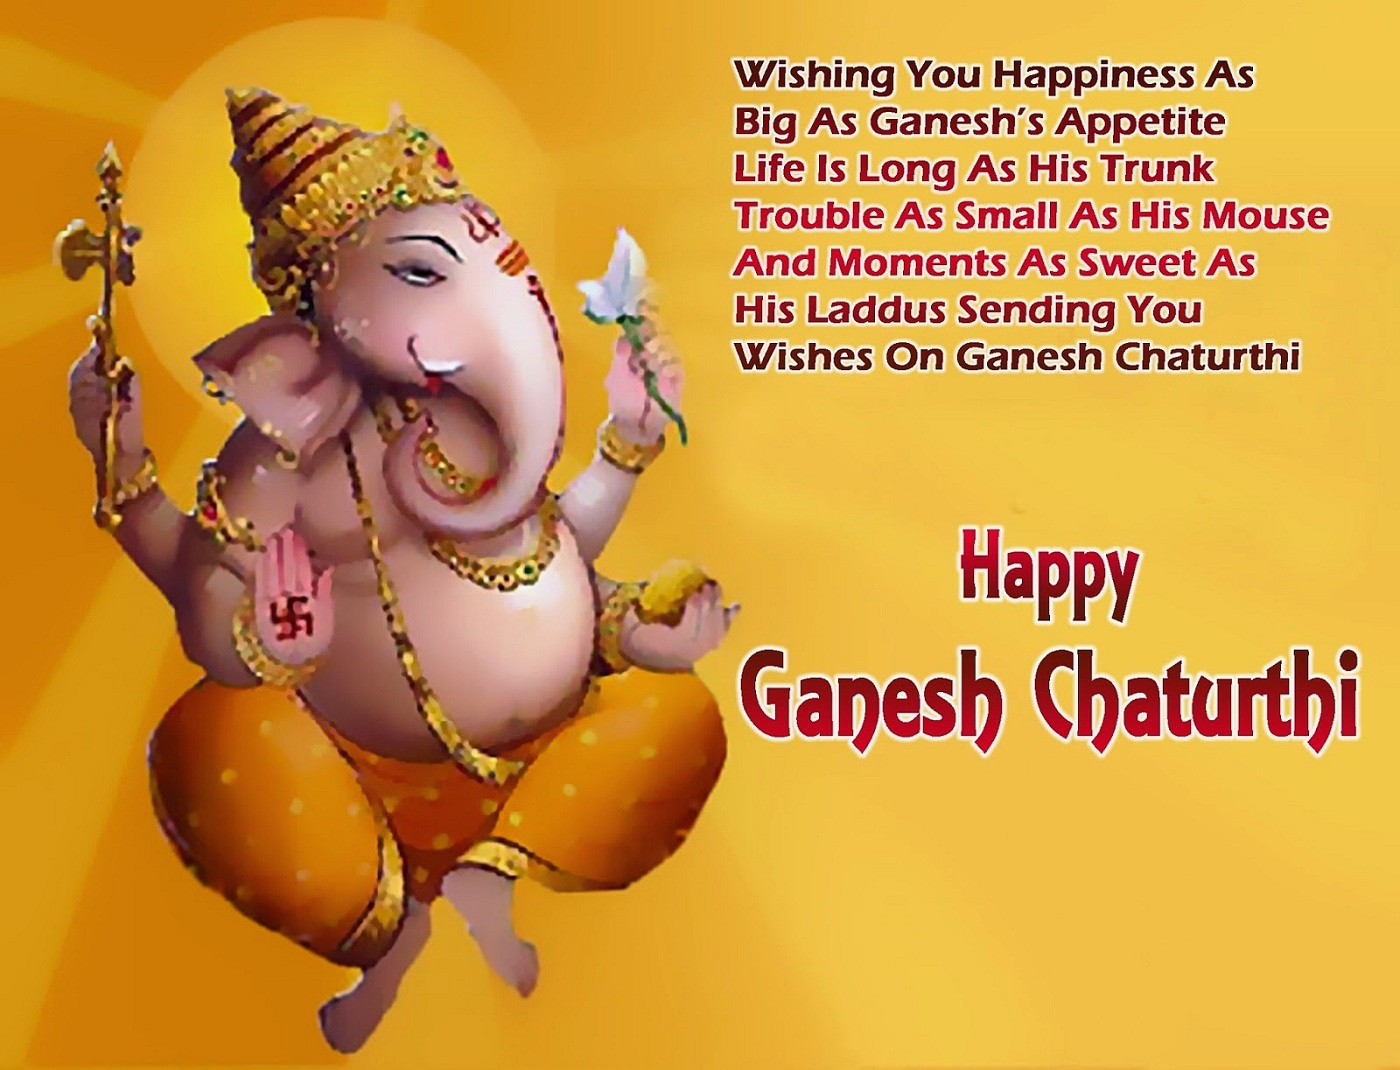 Download - Ganesh Chaturthi Wallpapers_10